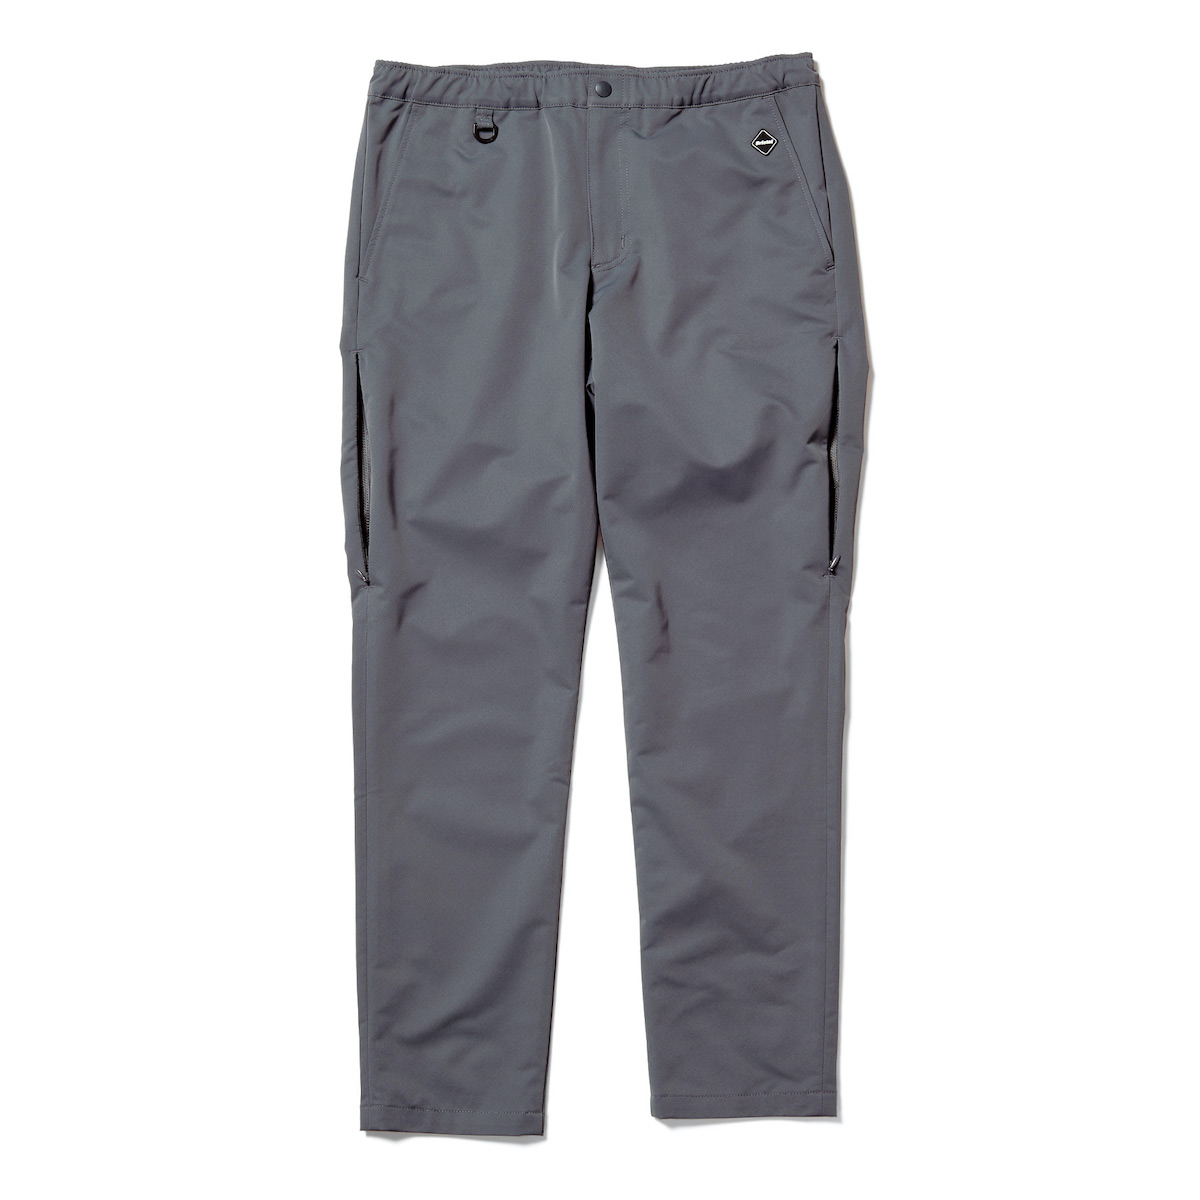 F.C.Real Bristol / VENTILATION STRETCH CHINO PANTS (Gray)